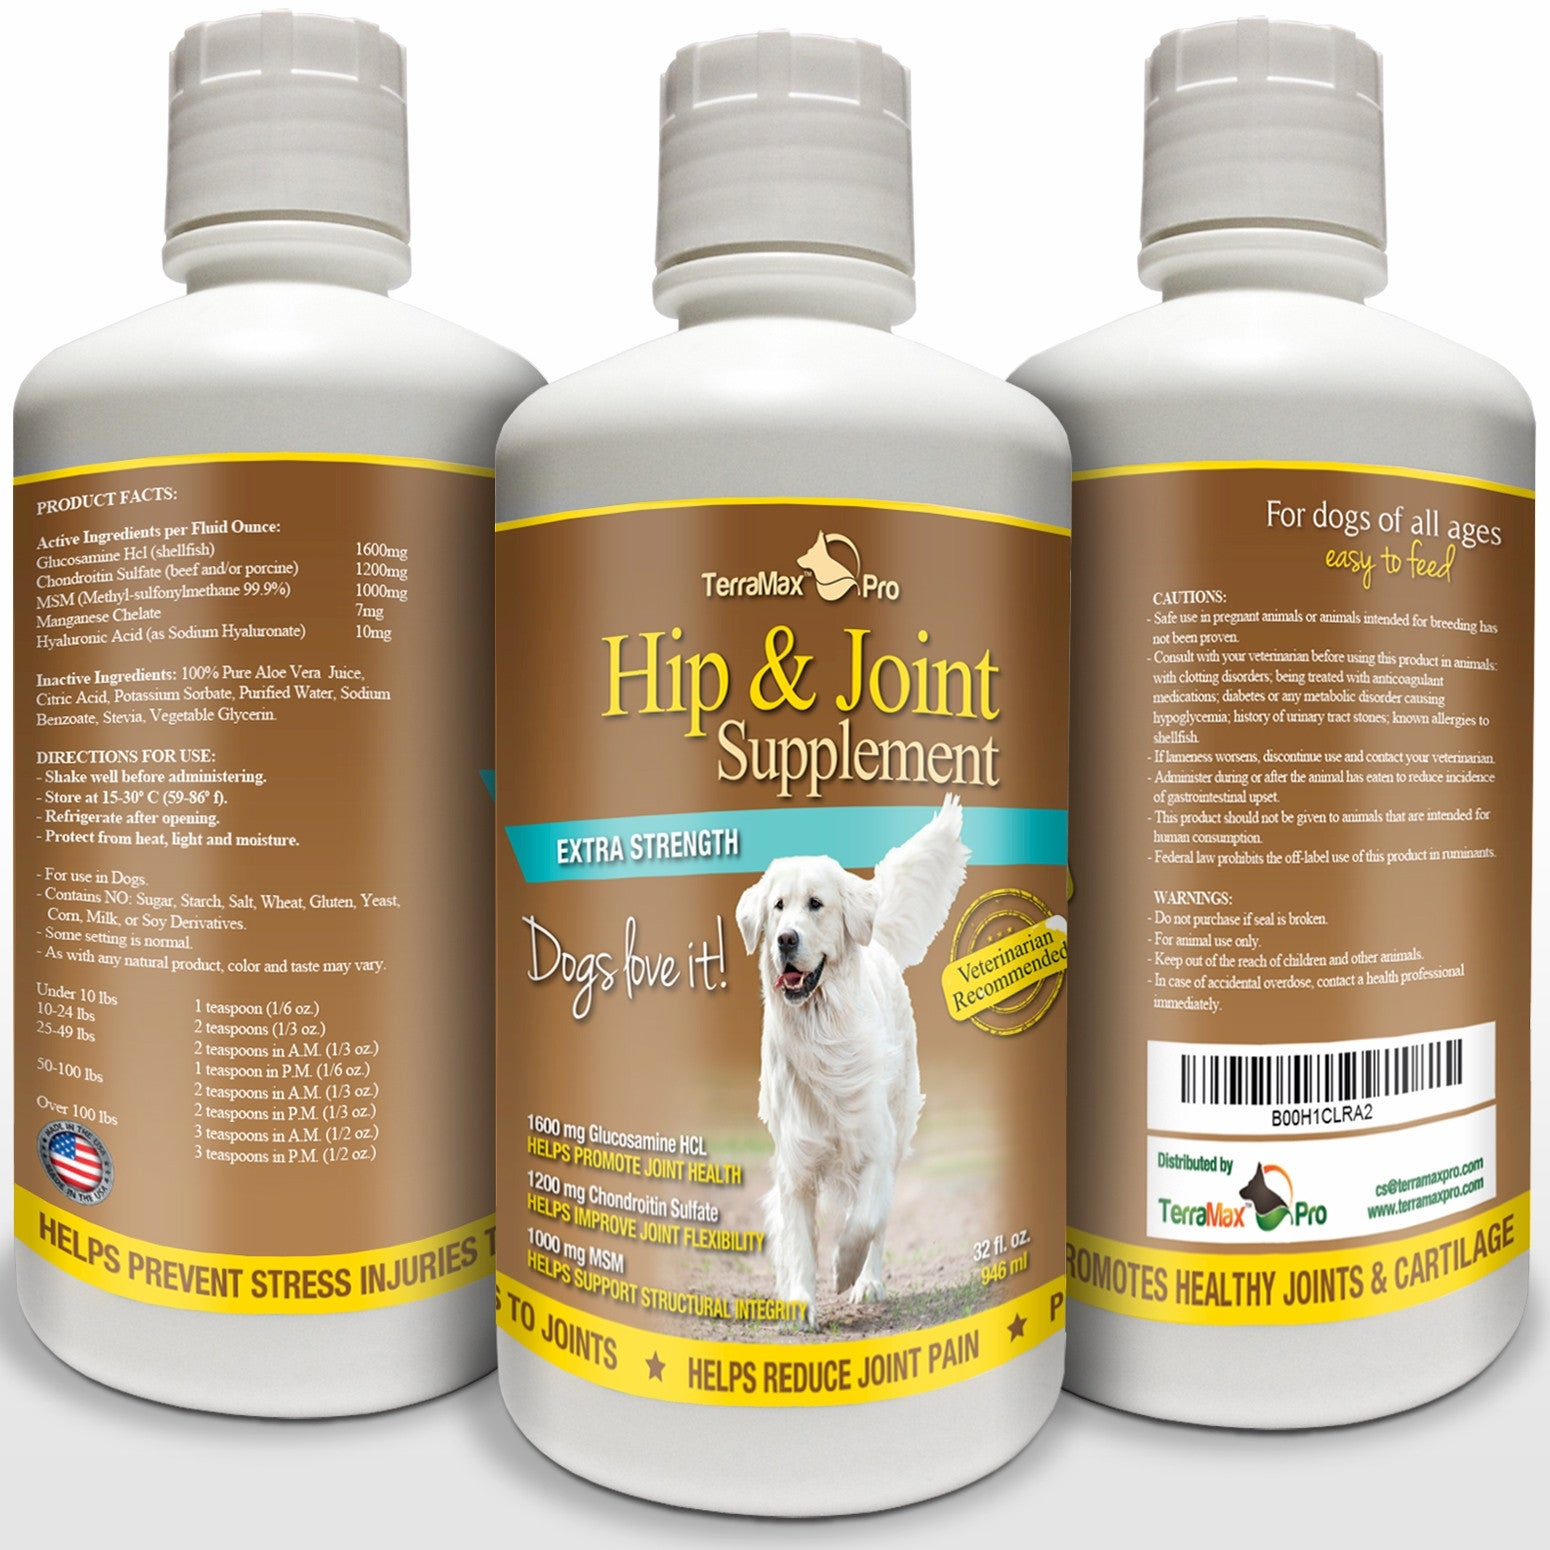 Hip & Joint Supplement for Dogs | TerraMax Pro